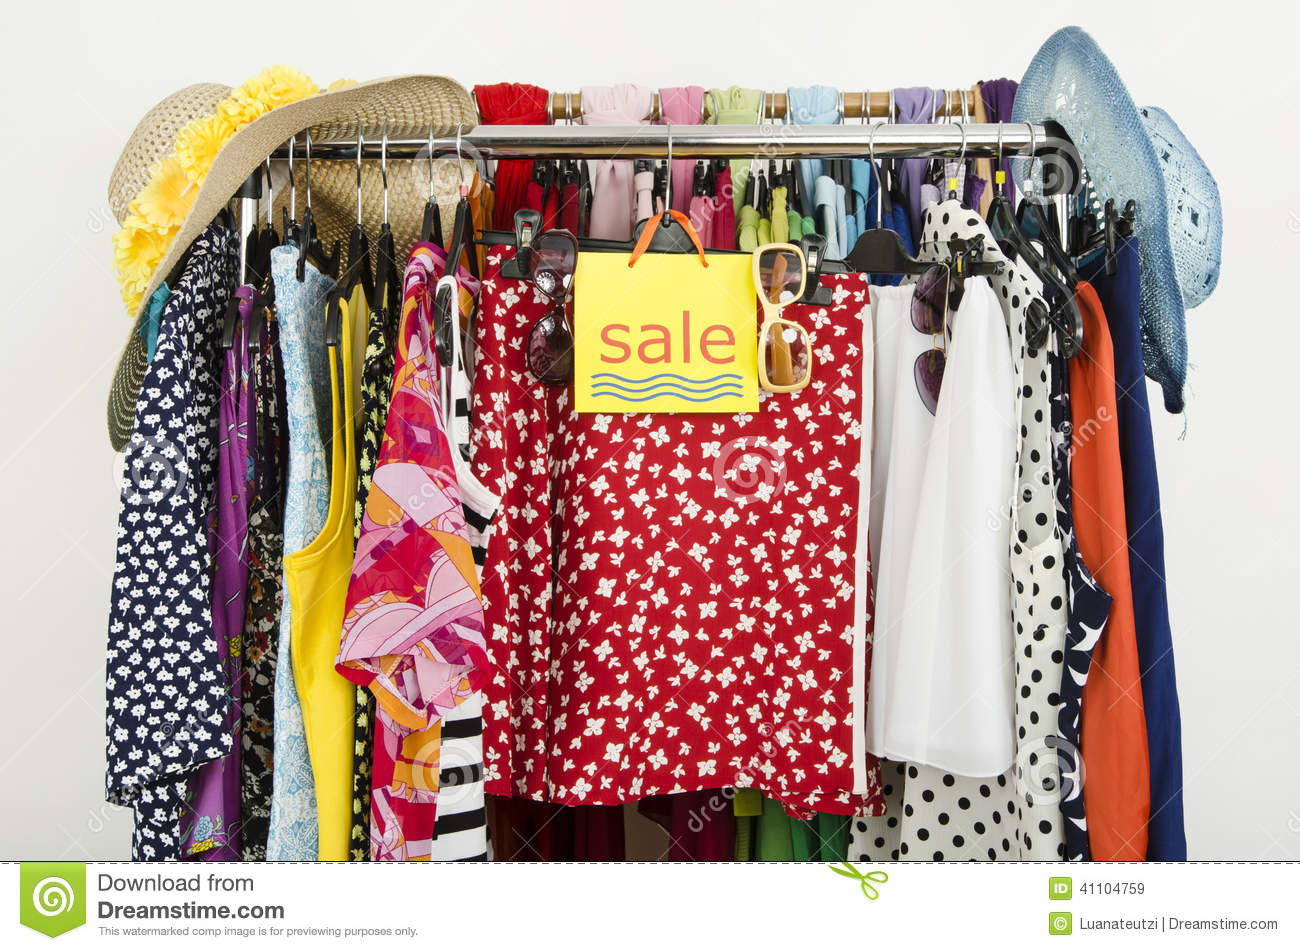 Cute Clothes In Sale Cute summer outfits displayed